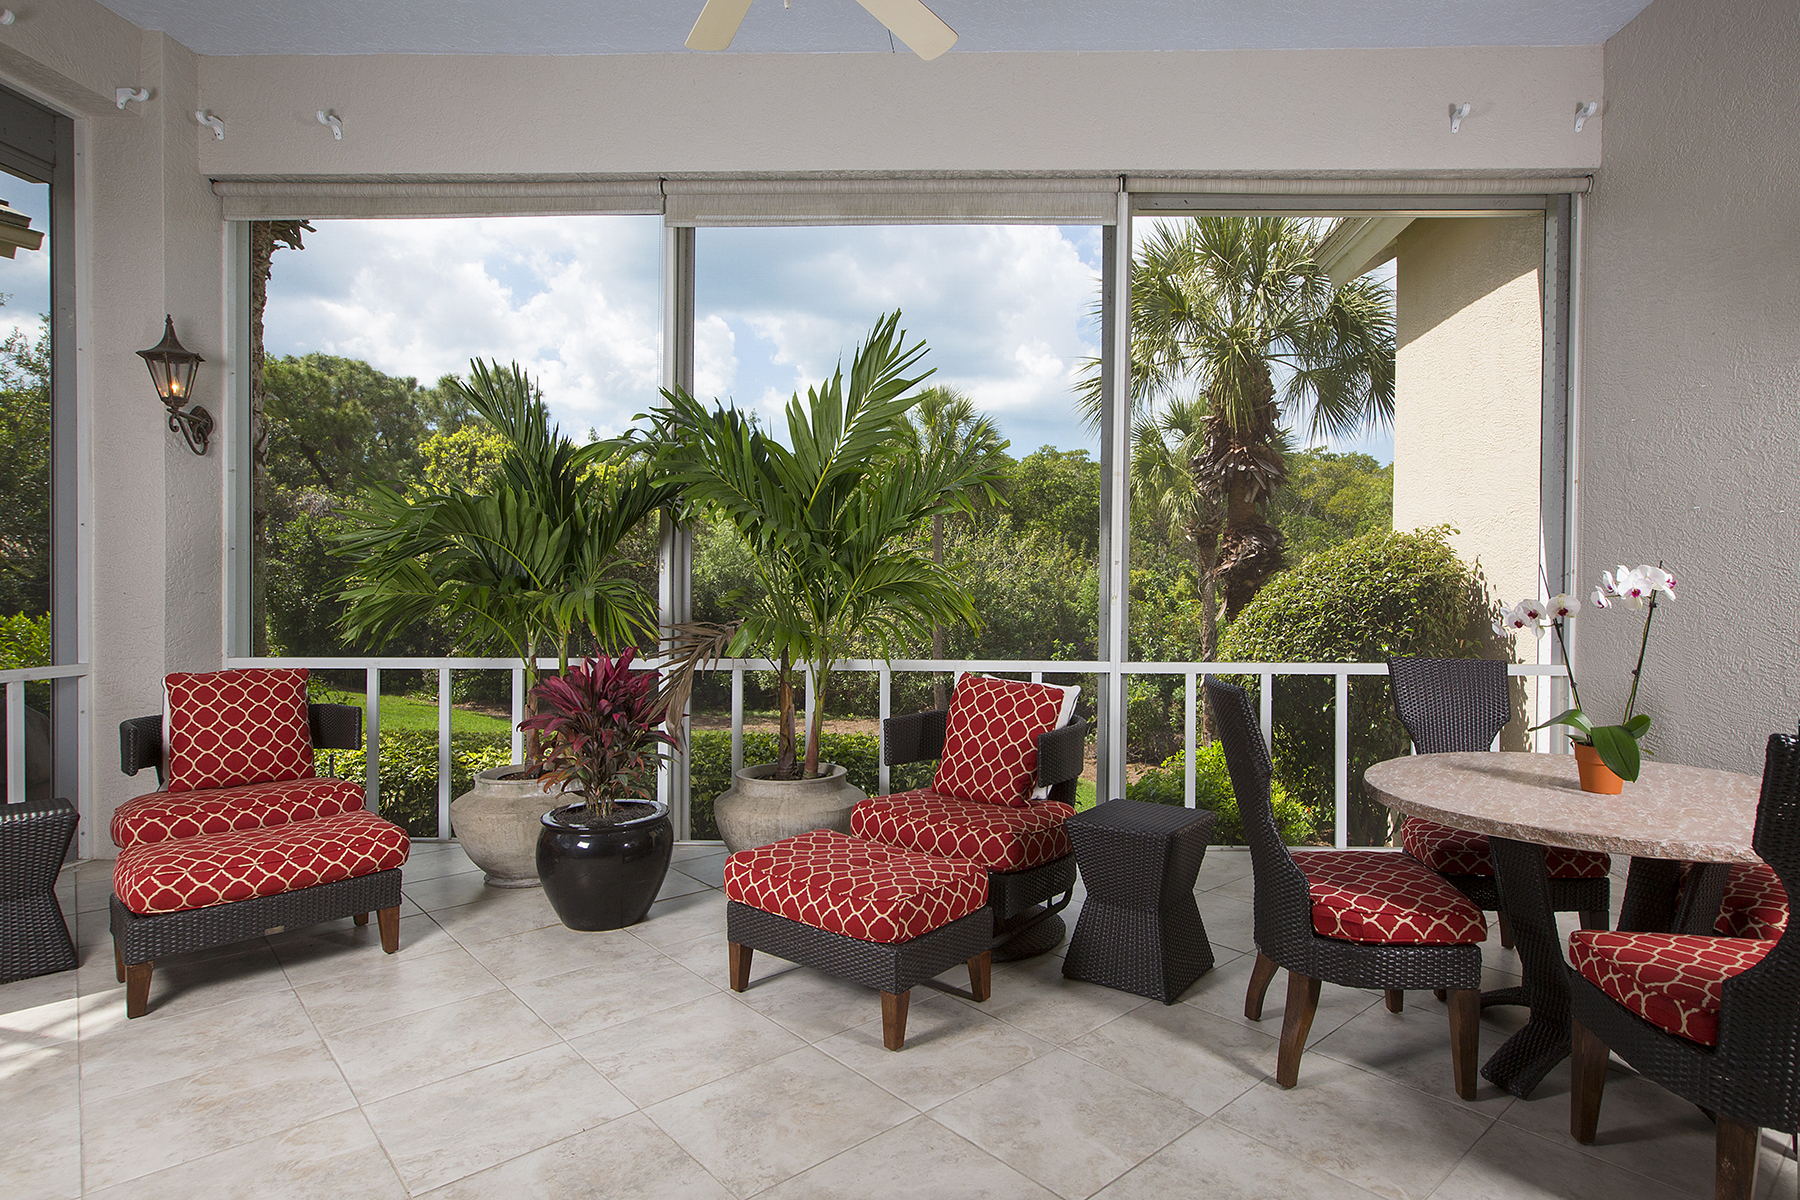 Additional photo for property listing at BONITA BAY - ARBOR STRAND 27480  Arbor Strand Dr,  Bonita Springs, Florida 34134 United States